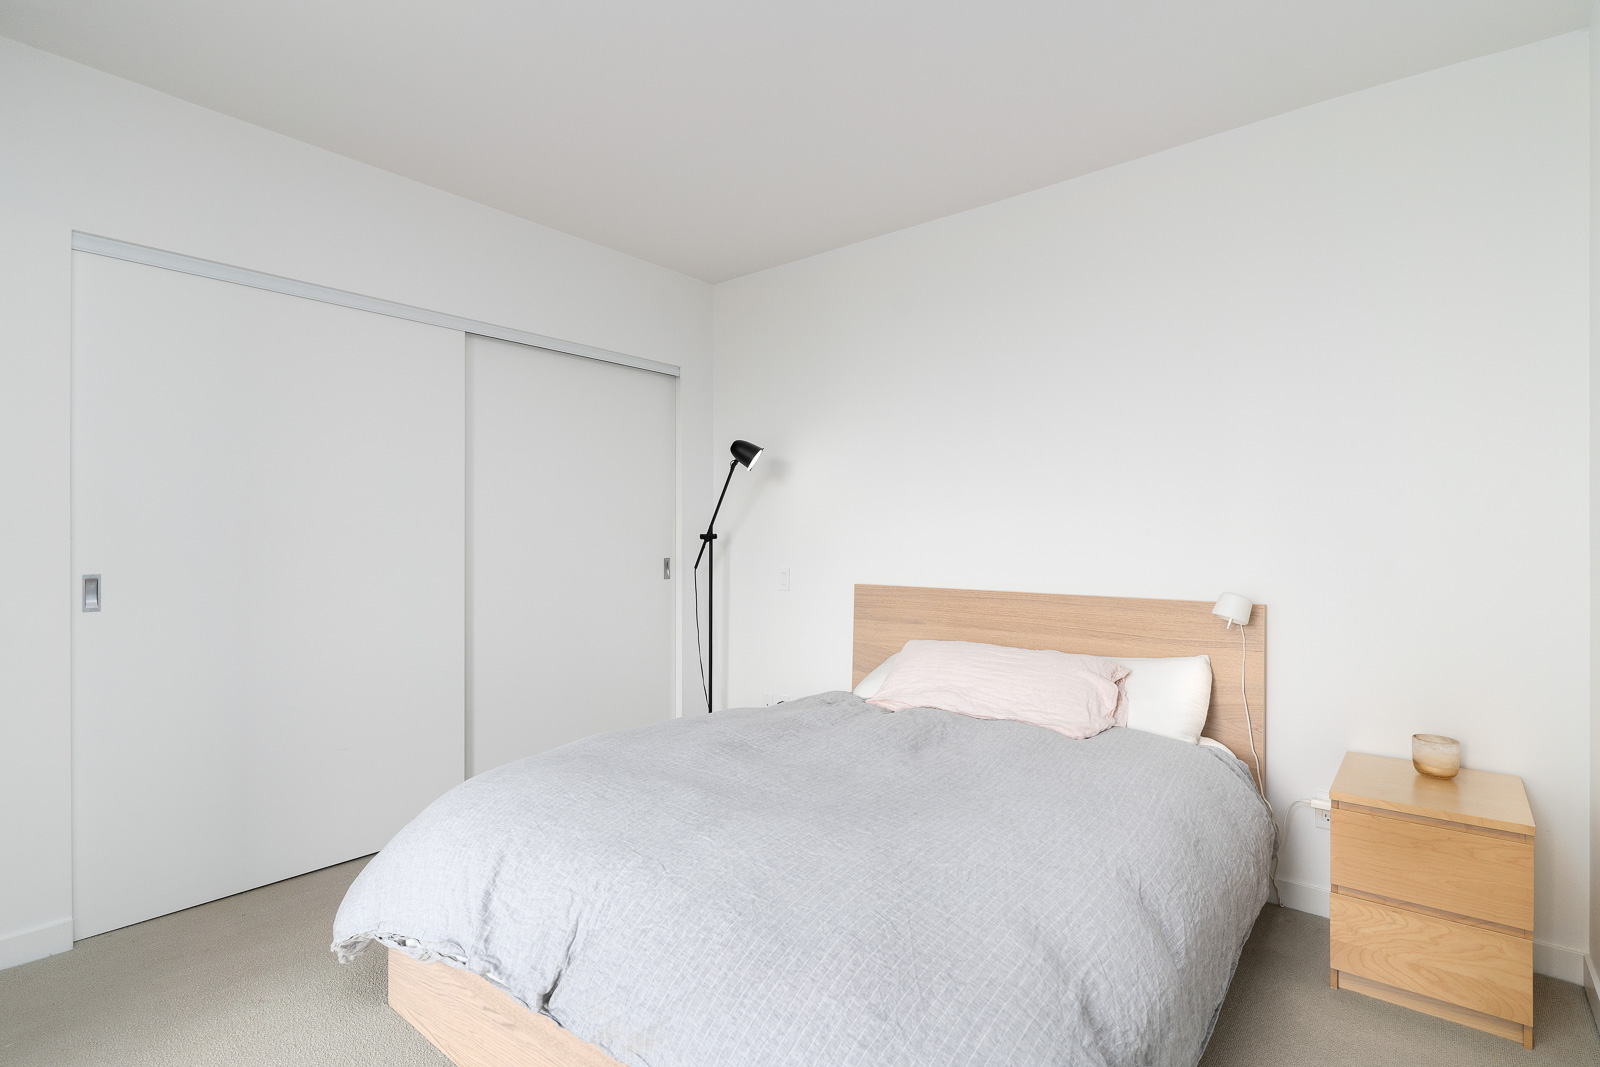 bedroom in Fairview condo with white walls